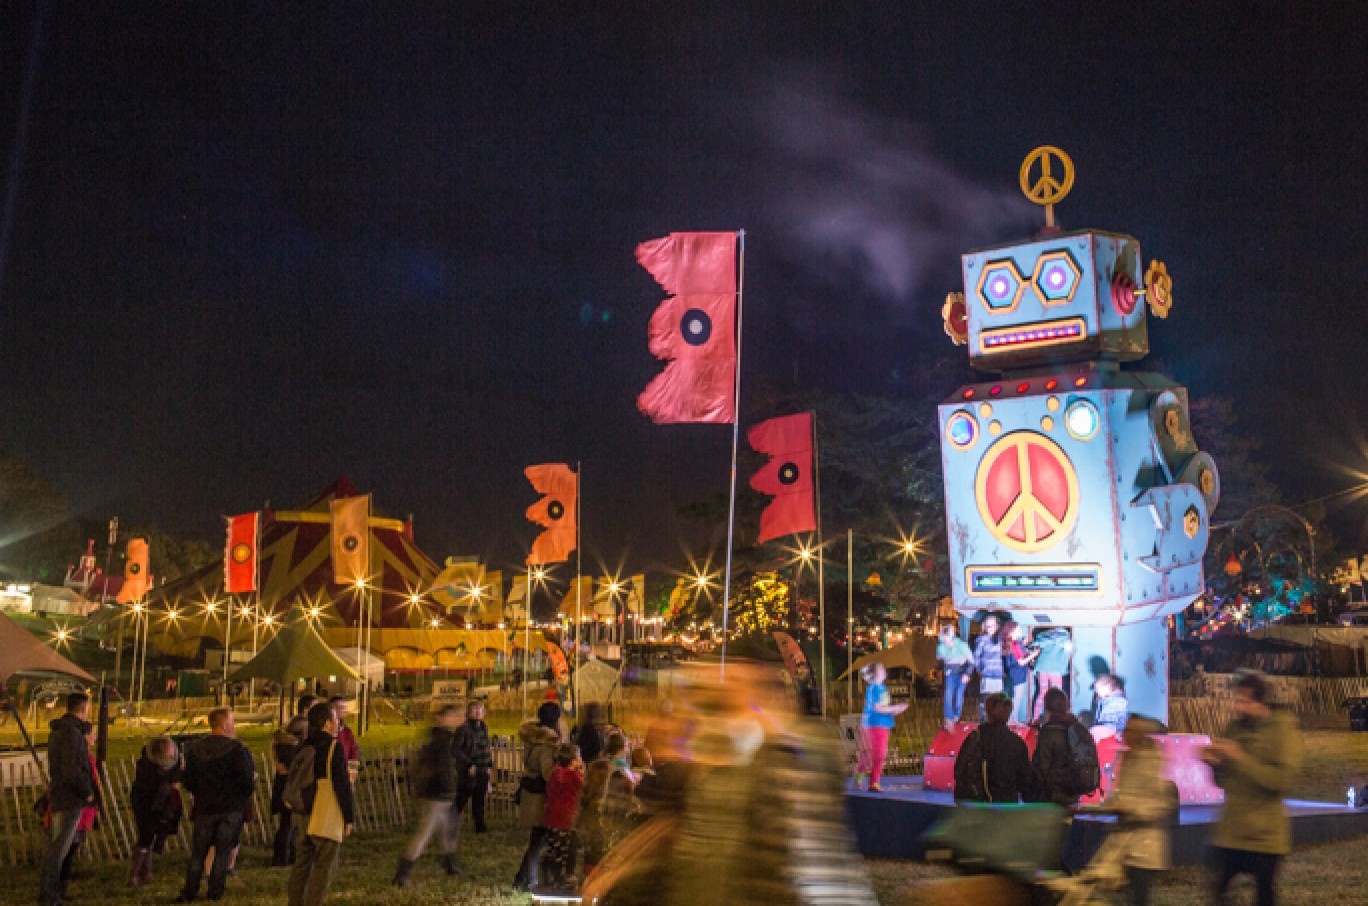 6_148-camp-bestival-friday-226641501585124